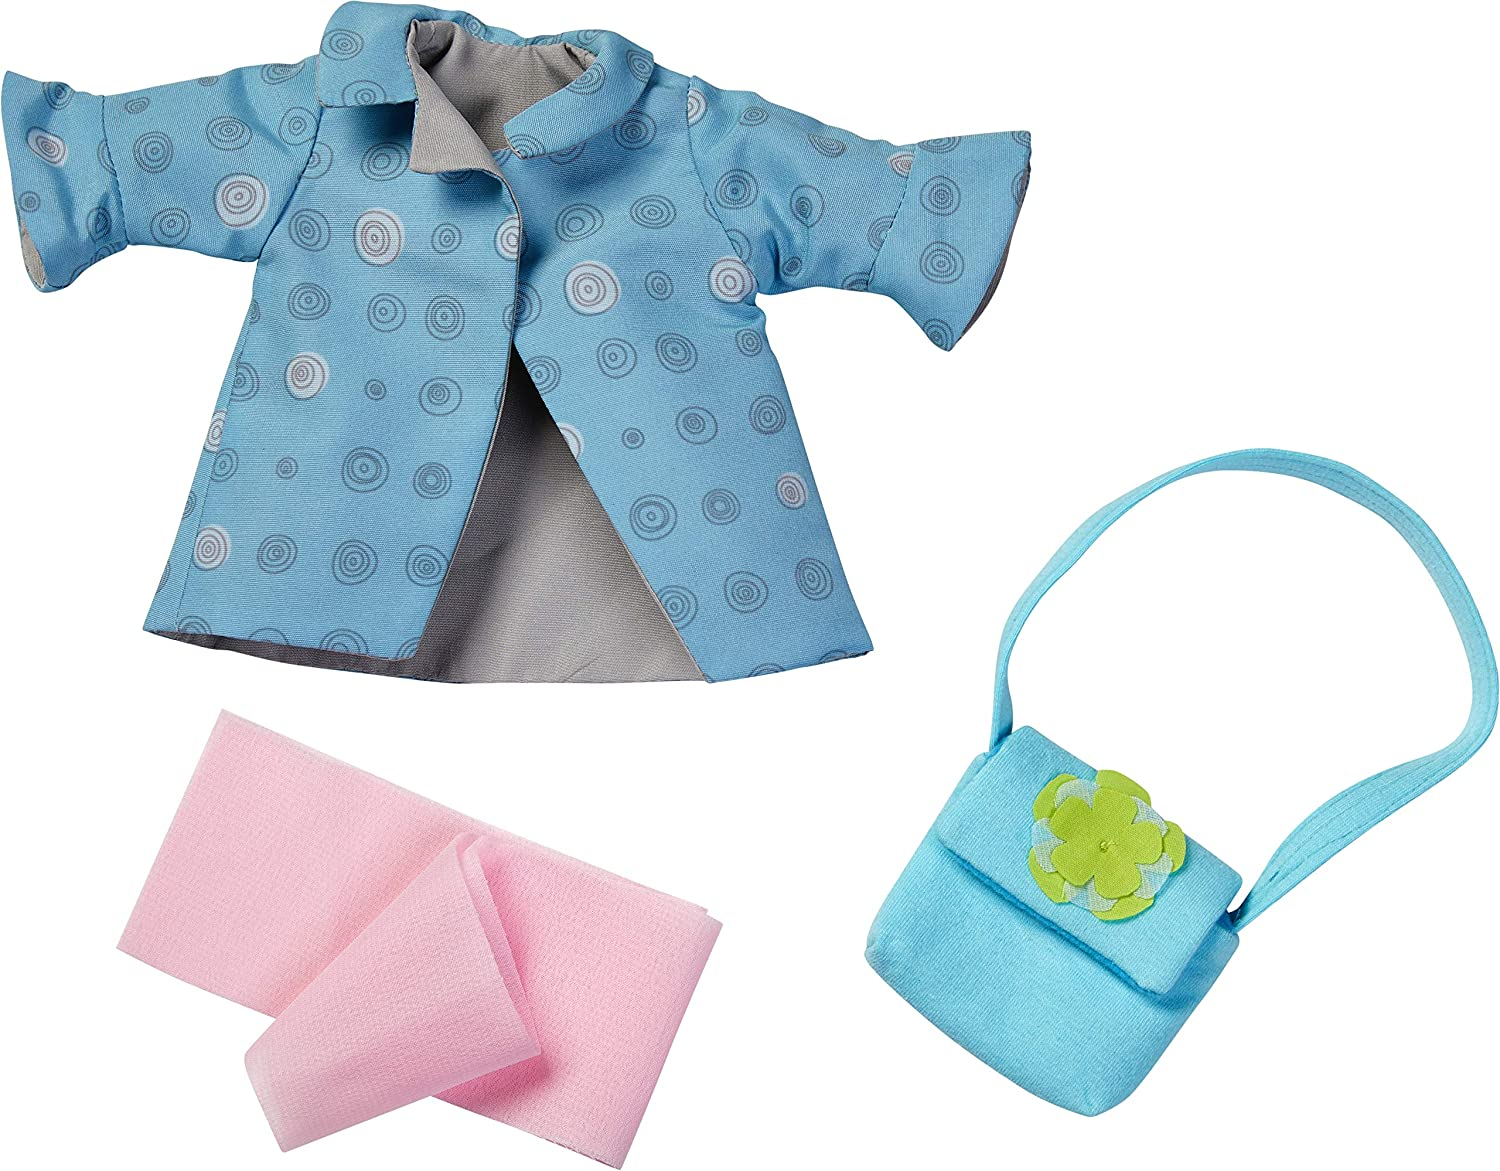 HABA 304581 Doll Clothes